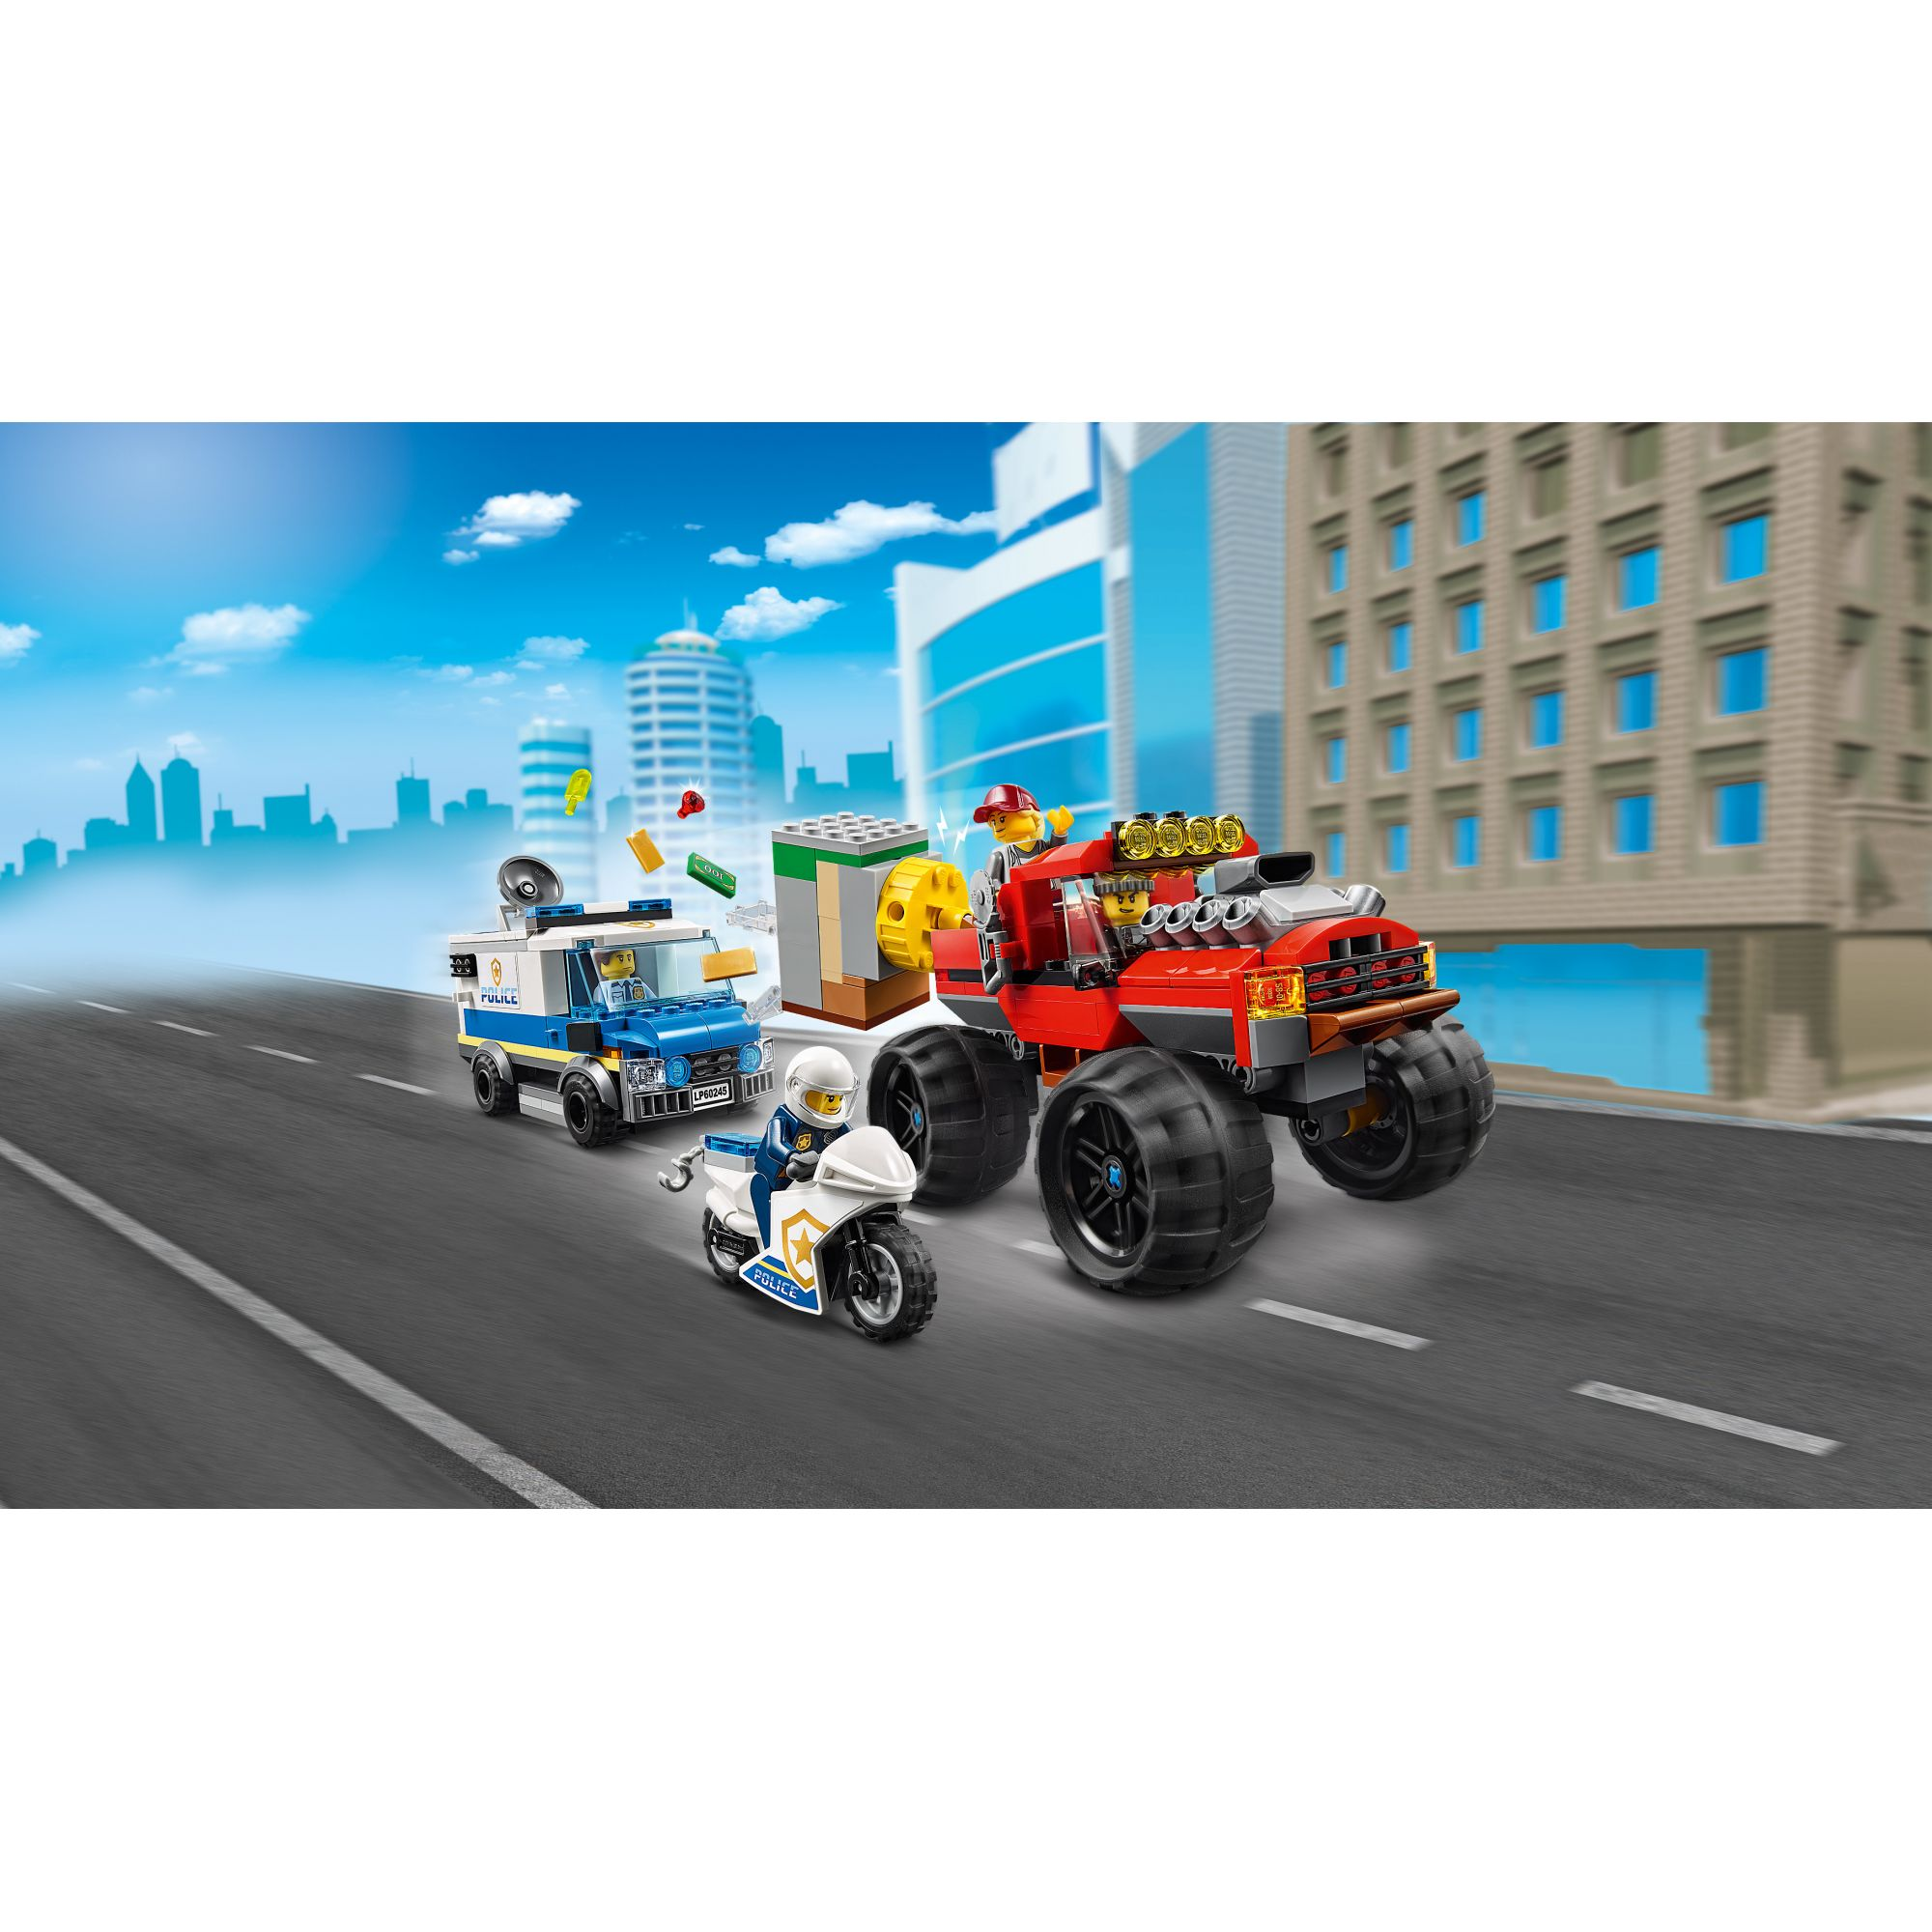 LEGO CITY   LEGO City Rapina sul Monster Truck - 60245